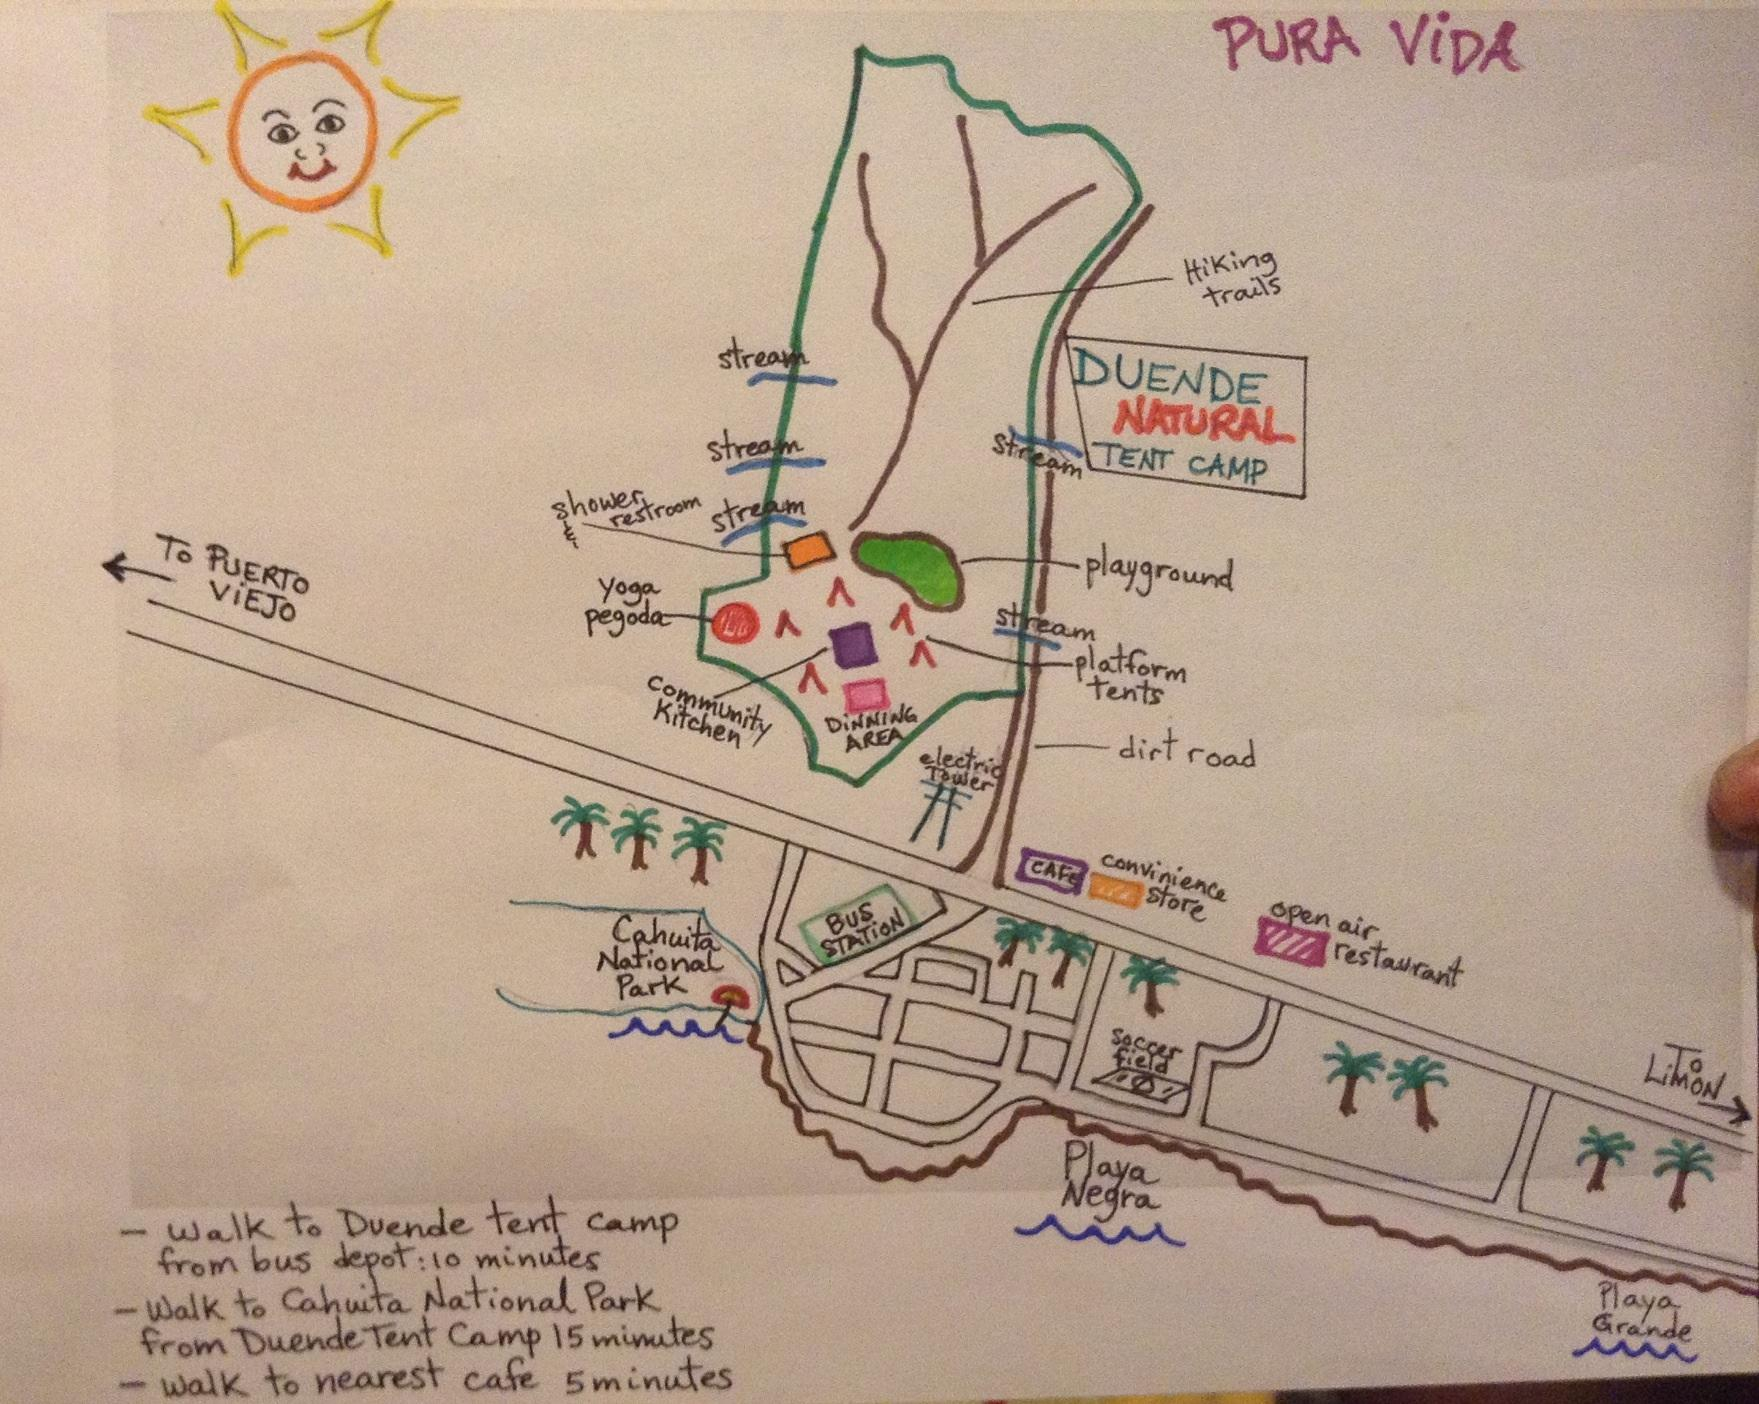 Duende Natural Tent Camp, Site Map & Town of Cahuita, Costa Rica - image 3 - student project